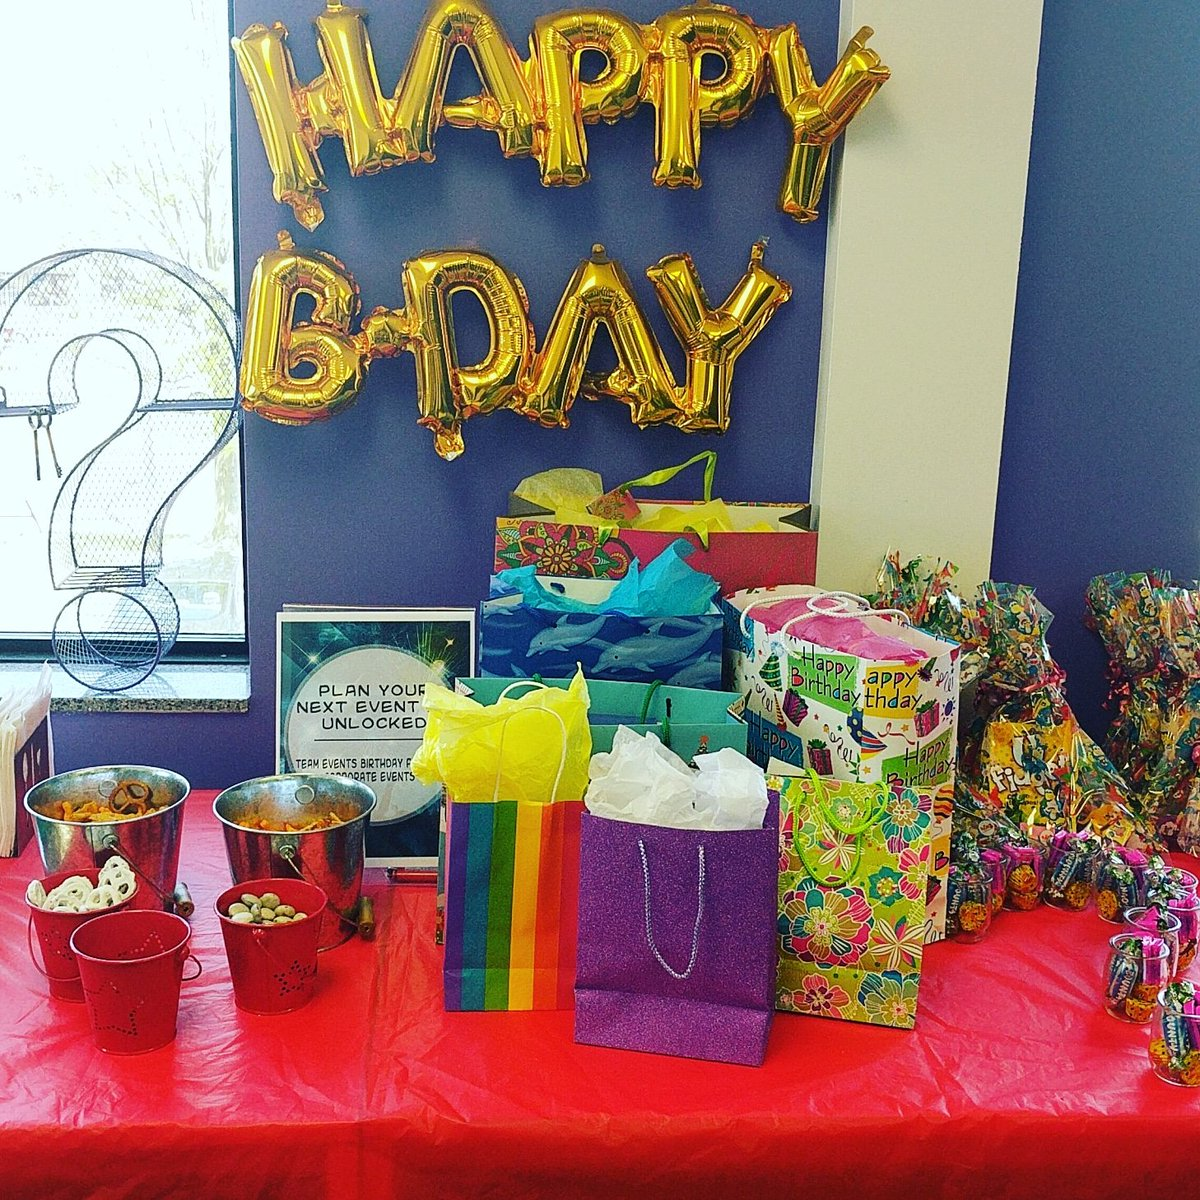 Kids Birthday Party Ideas Unlocked Ottawa On Twitter Another Filled Weekend At